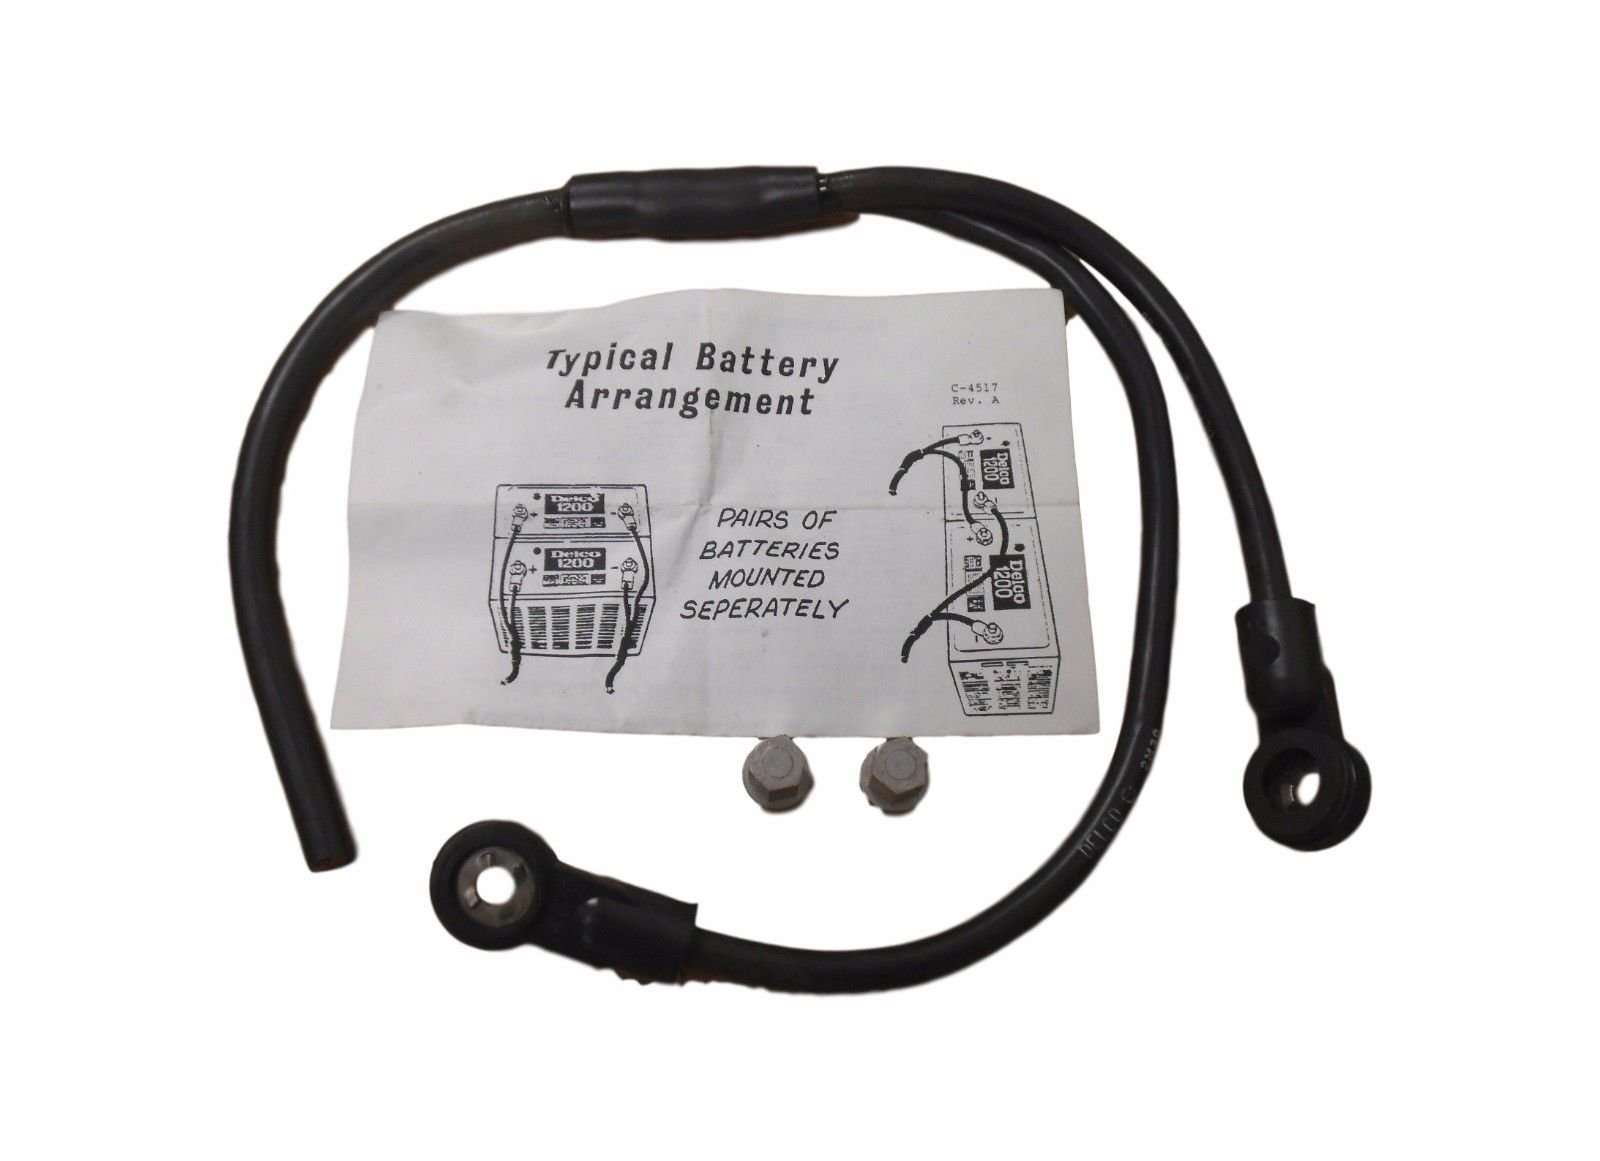 Delco 2M30 Battery Cable for Model 1200 Battery 12V Commercial Truck 112001748 by Delco